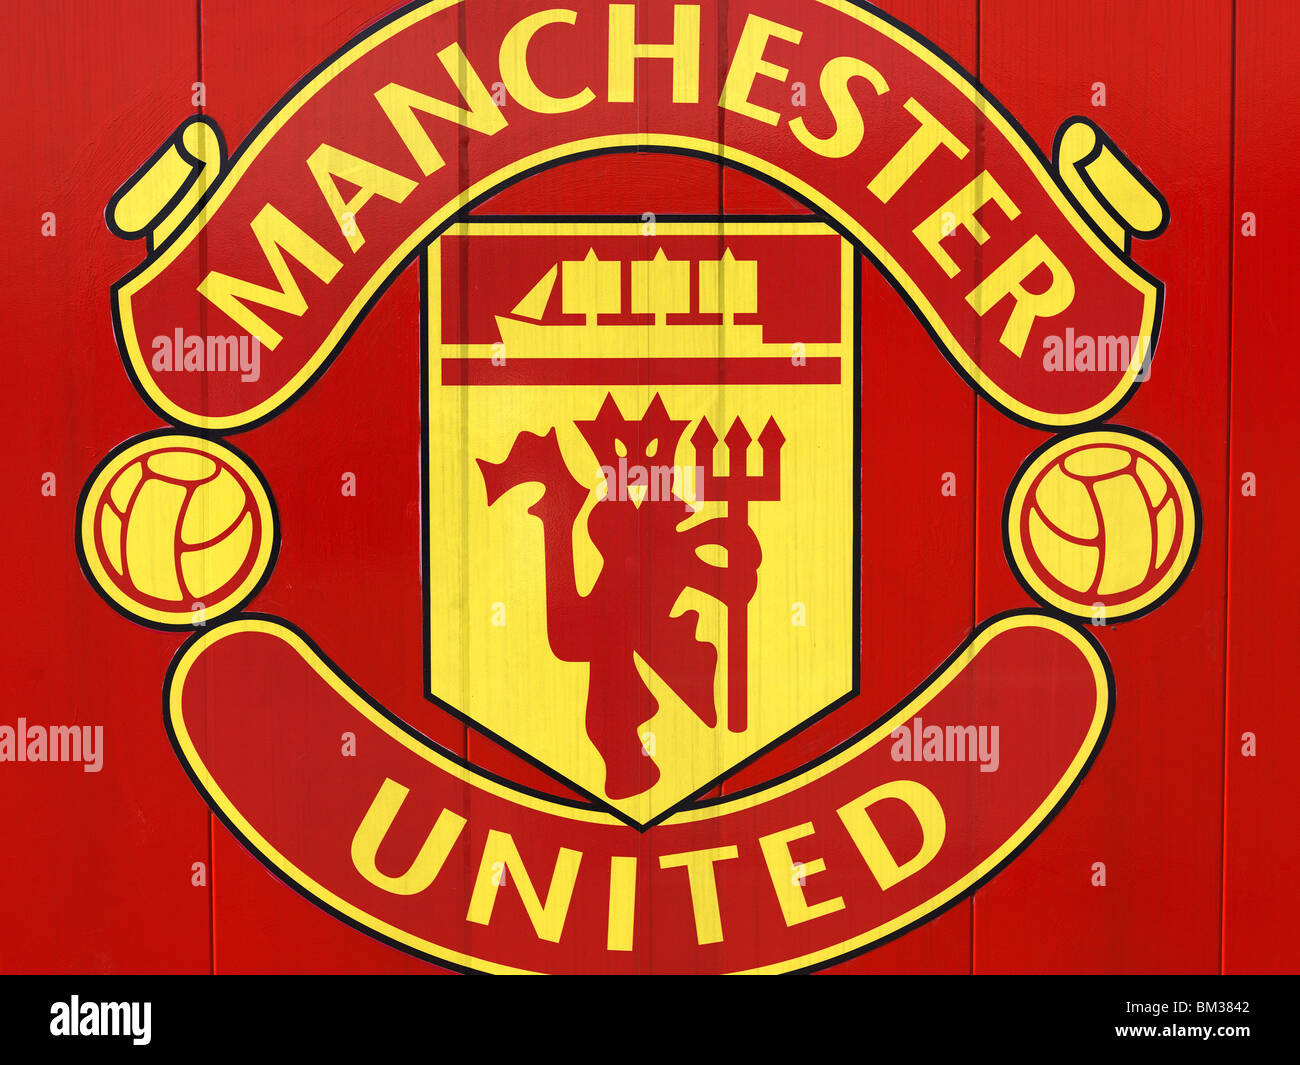 Man Utd Crest High Resolution Stock Photography And Images Alamy